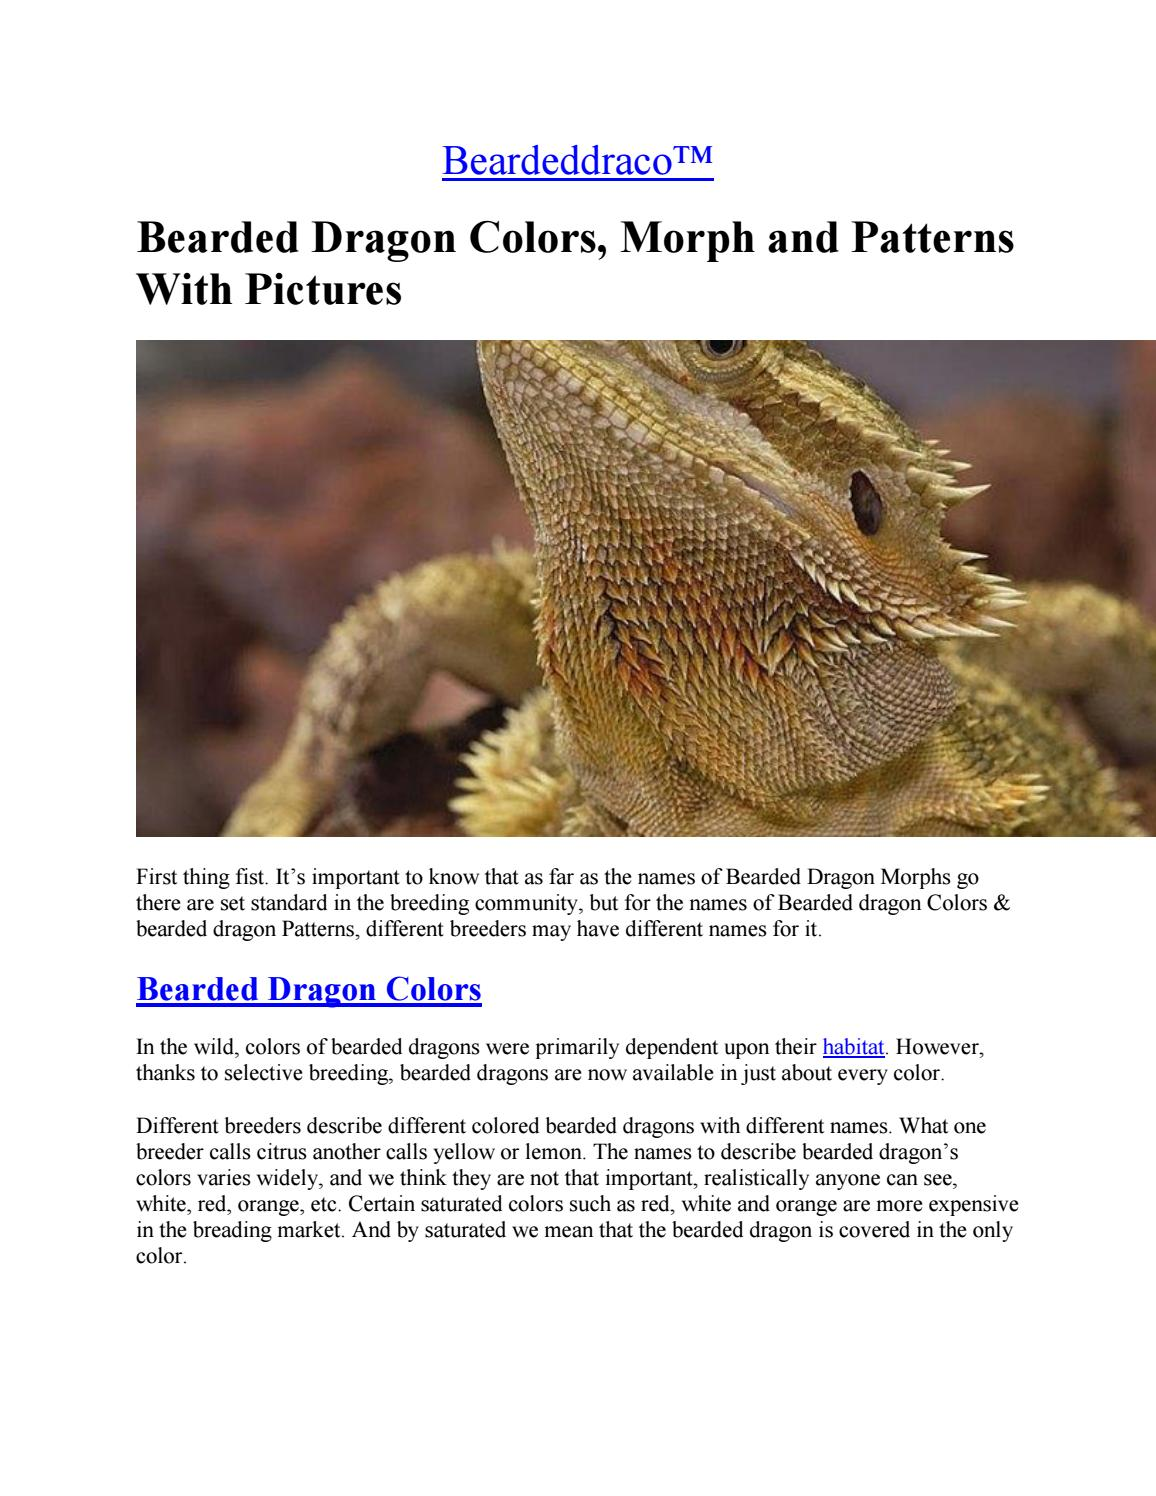 Bearded dragon changing colors yellow gold francis bacon the new organon analysis